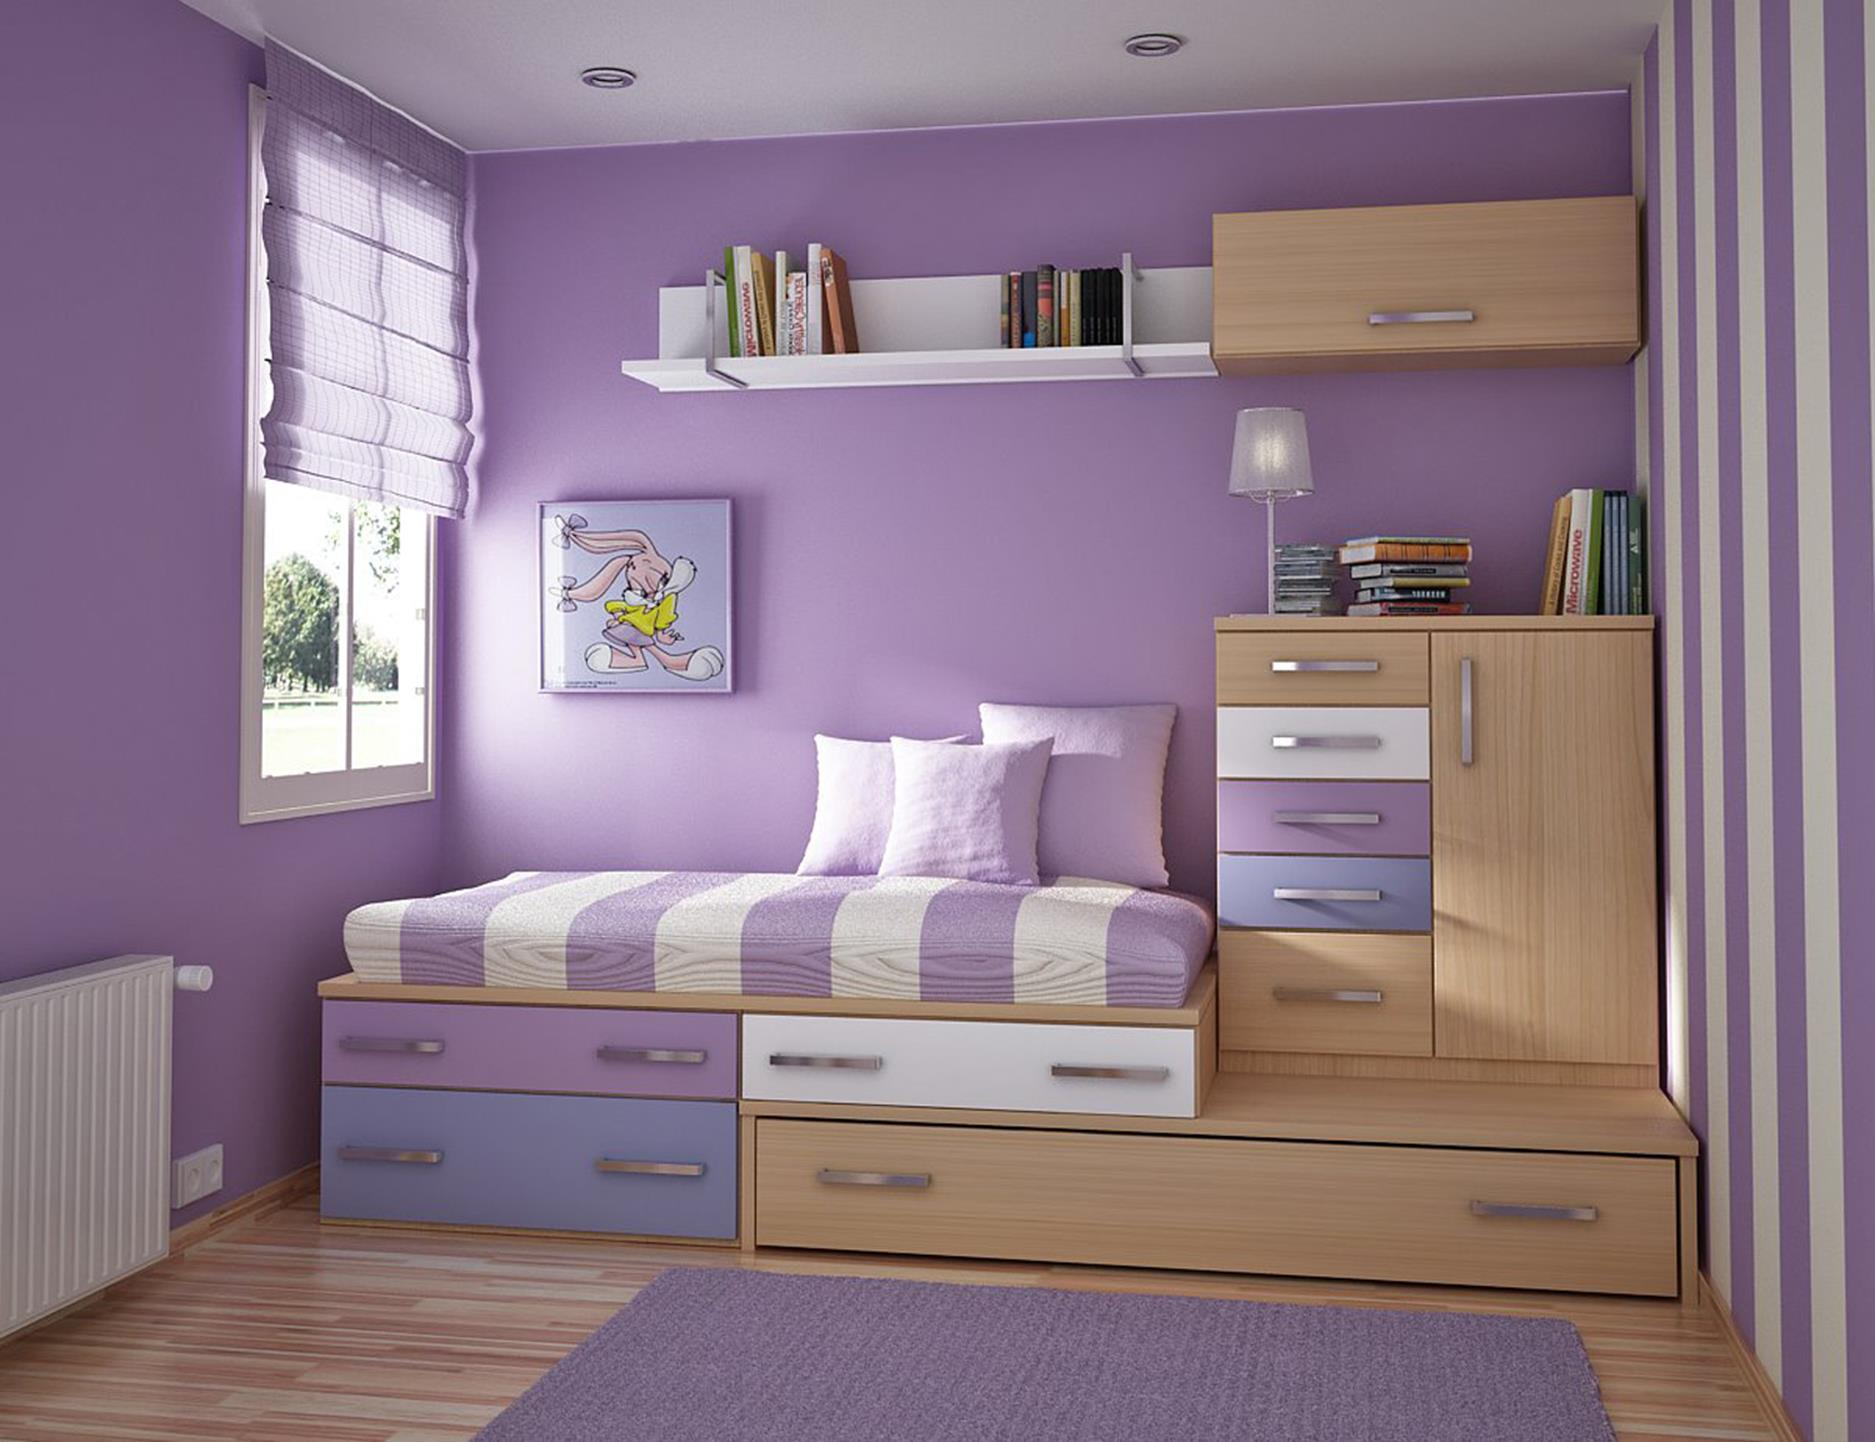 Color Full Kids Room Decorating Ideas On A Budget 12